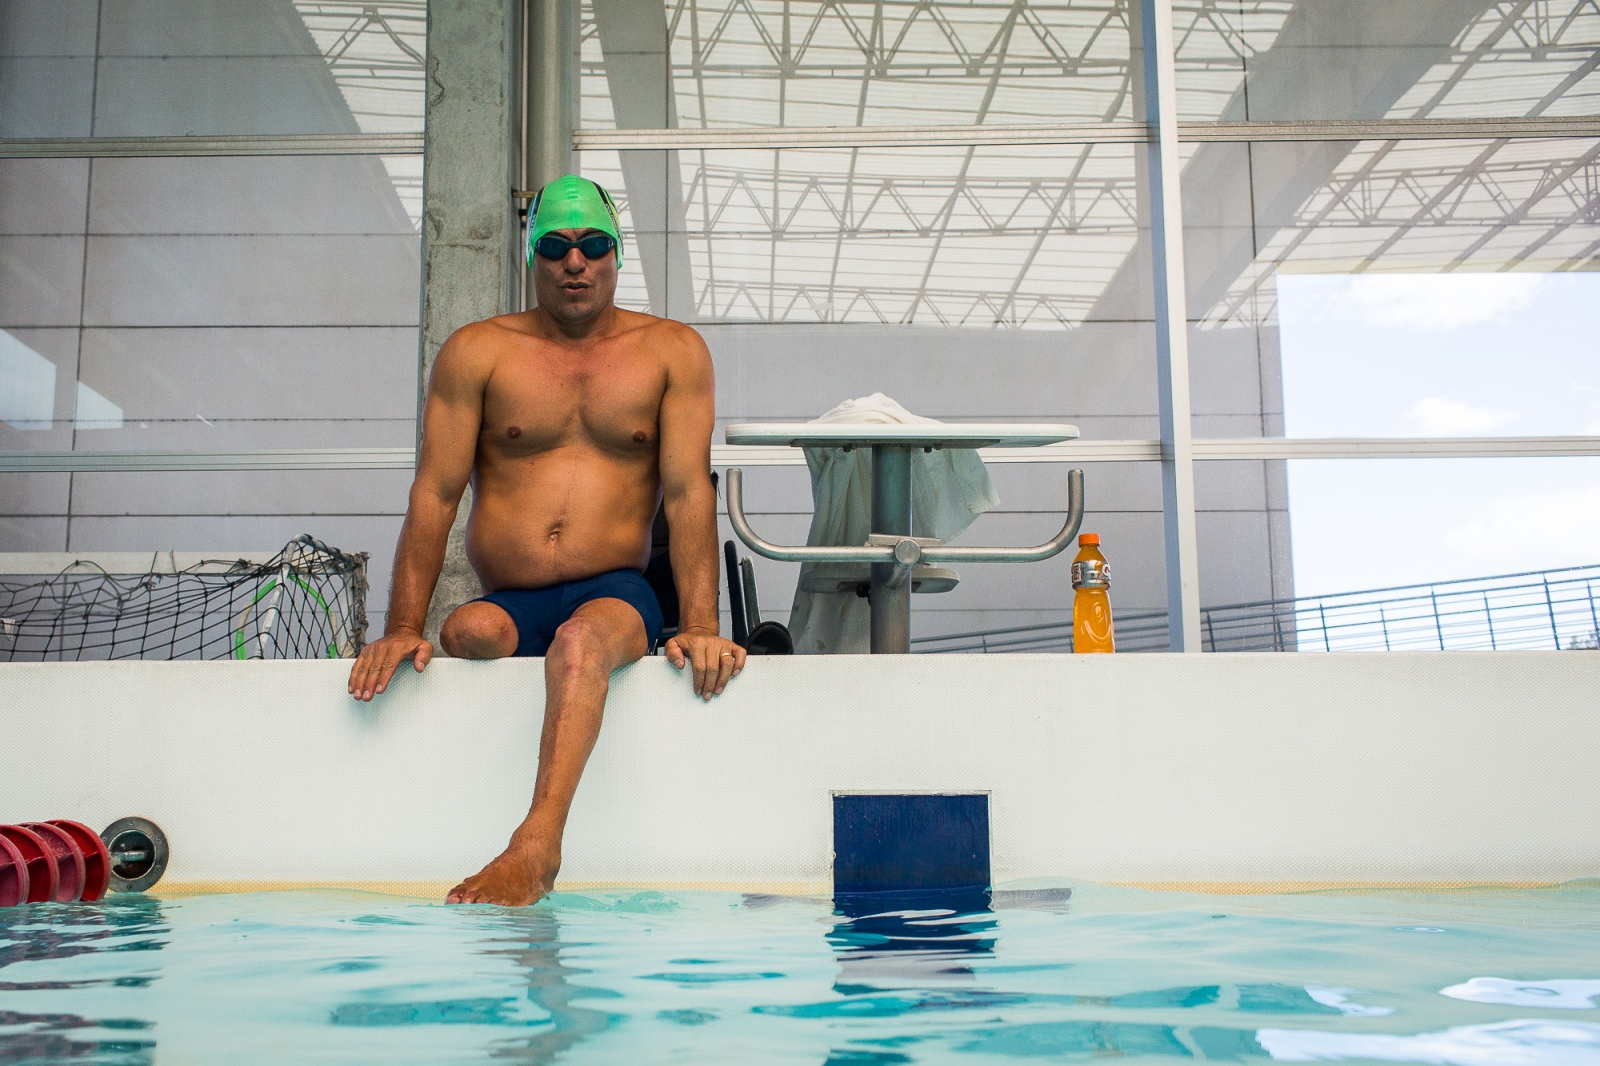 Moises Fuentes Garcia, 41, sits on the border of the swimming pool, before the beginning of his training session at the Simon Bolivar Aquatic Complex, Bogotá, 4th June, 2016.